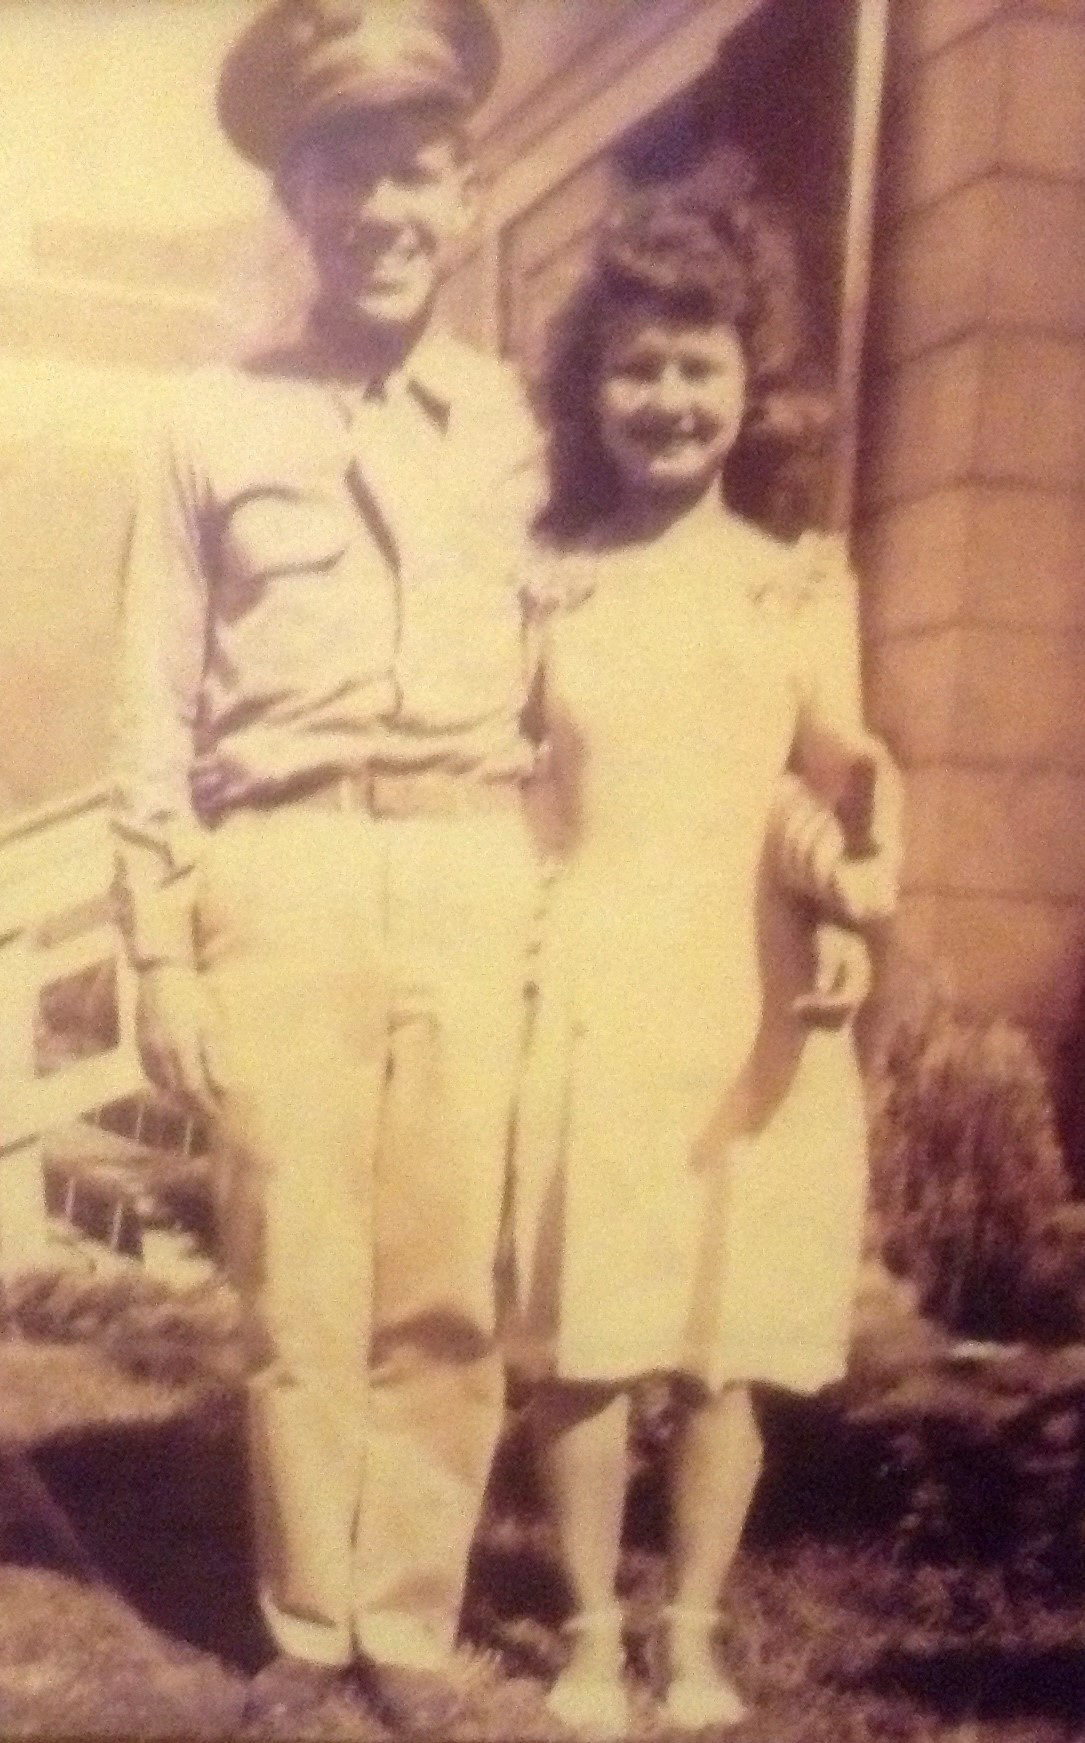 Gene and Virgie Hill